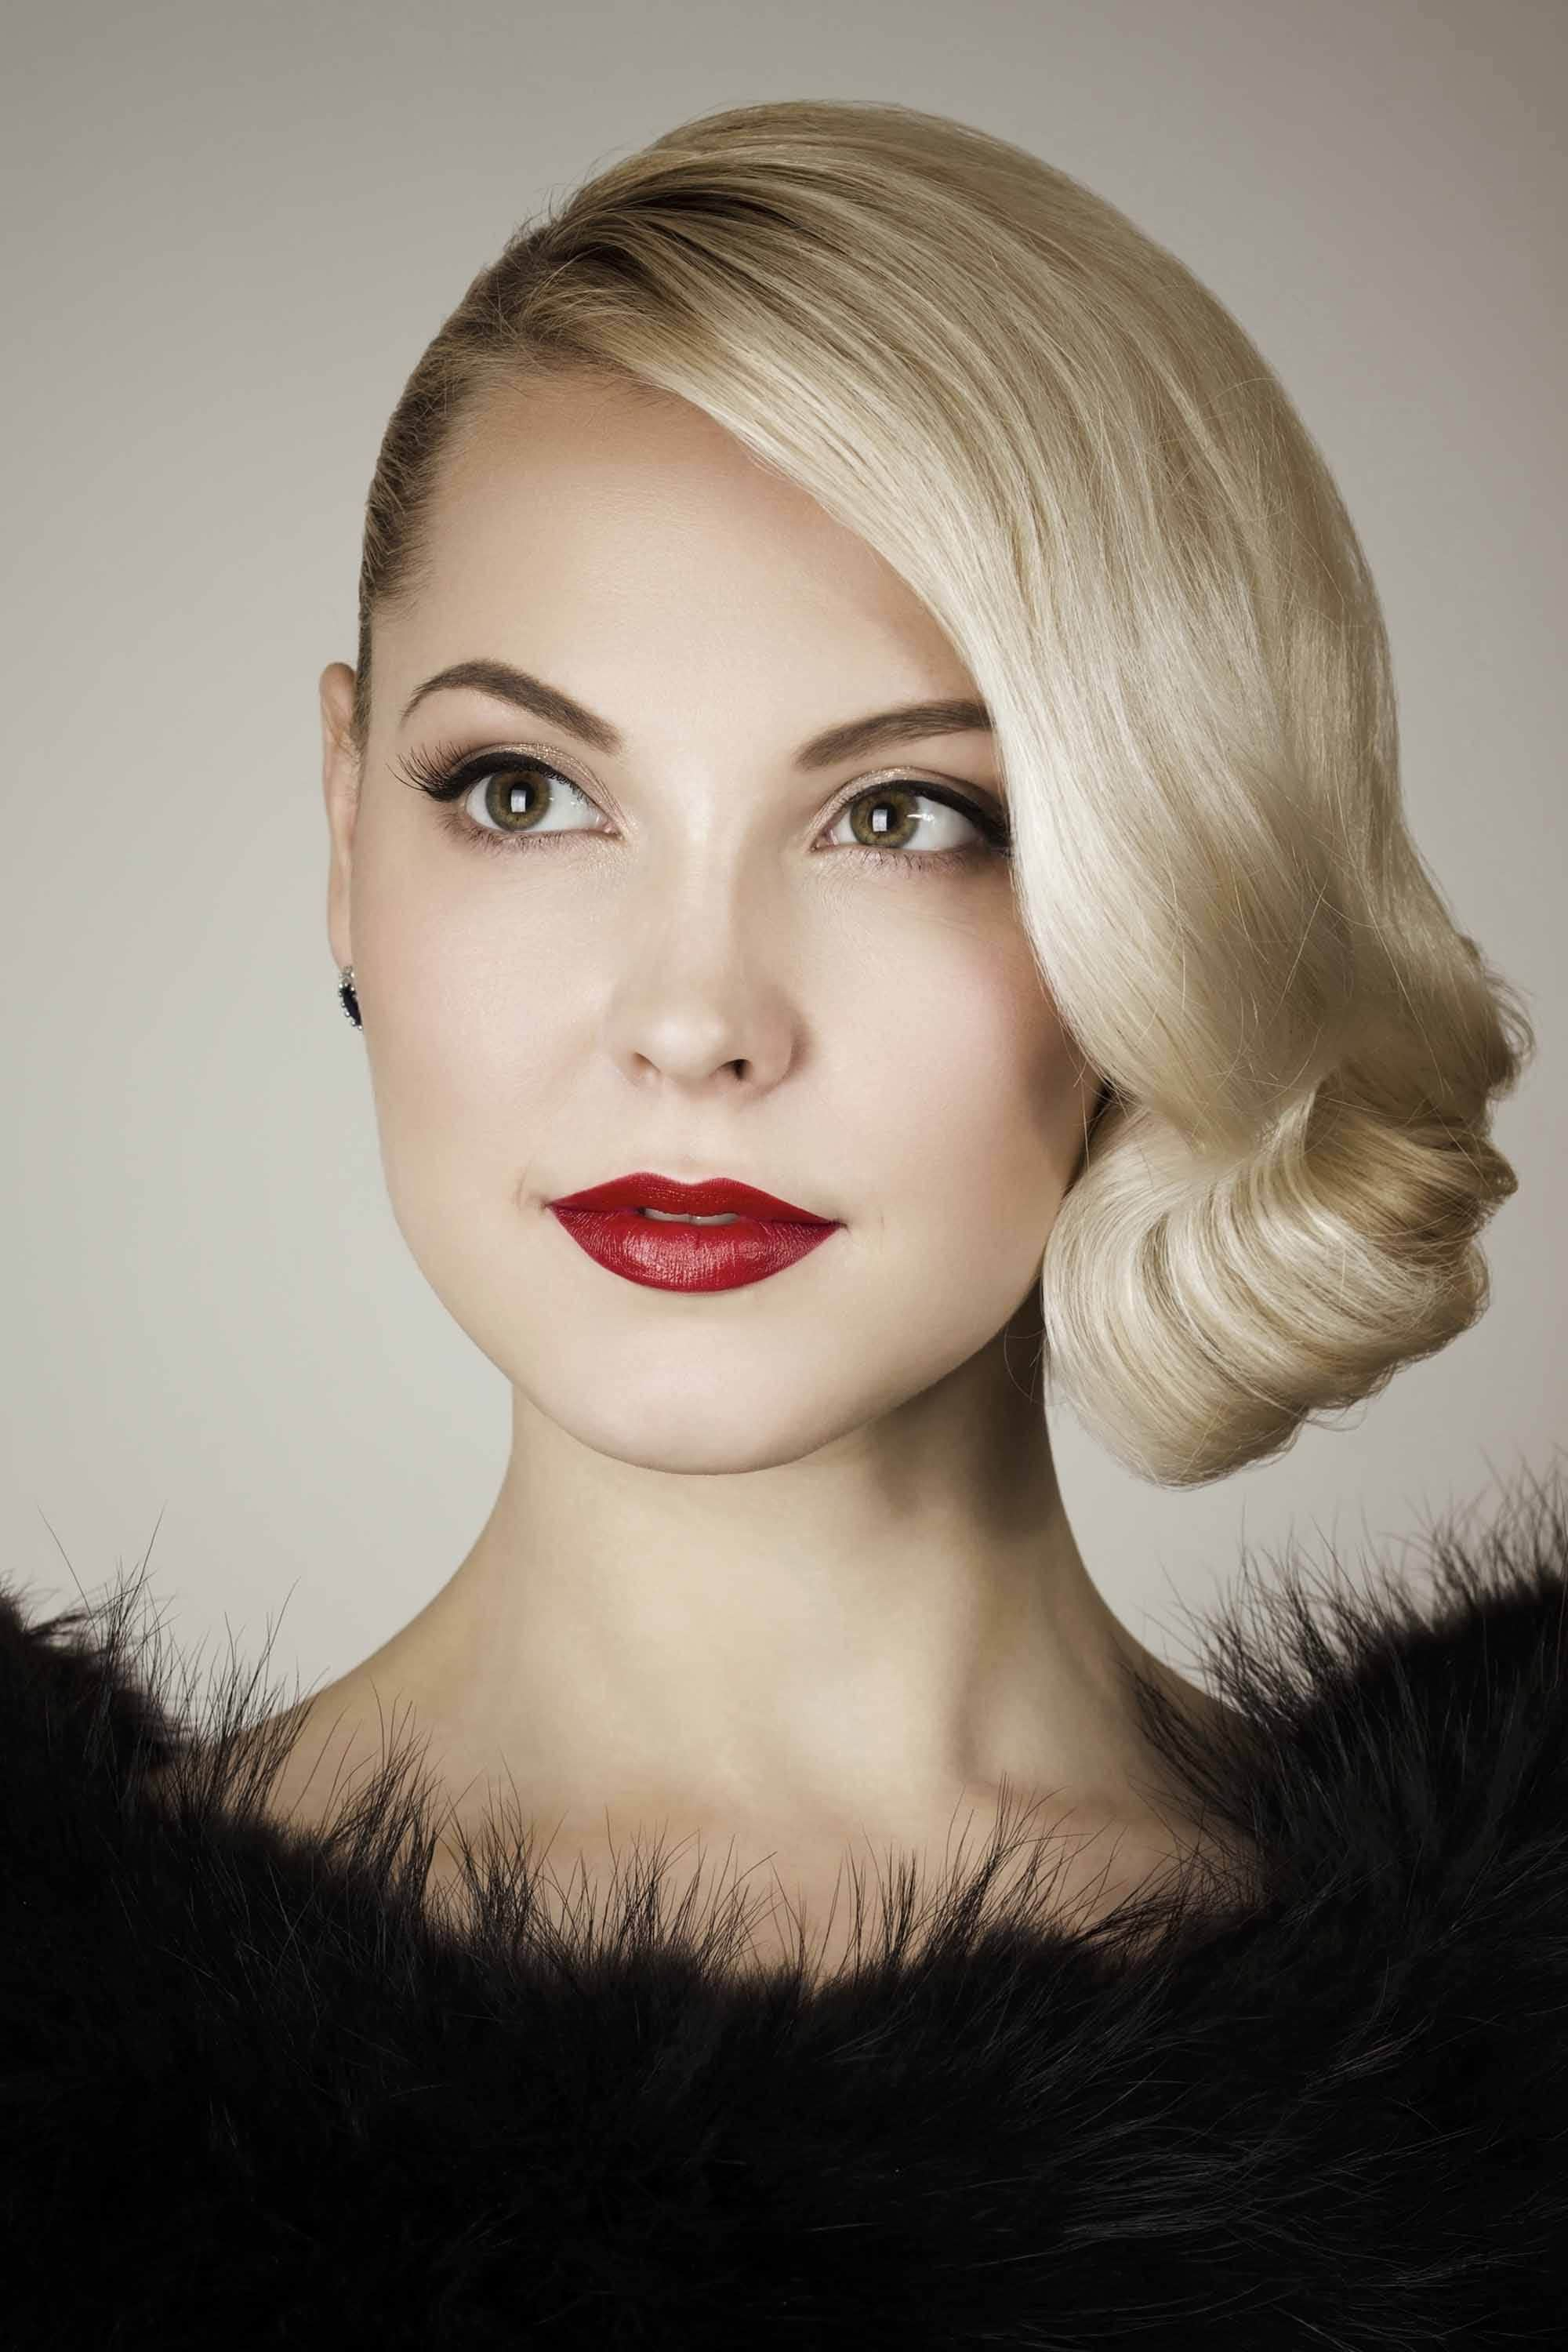 Great Gatsby hair ideas for Halloween and beyond